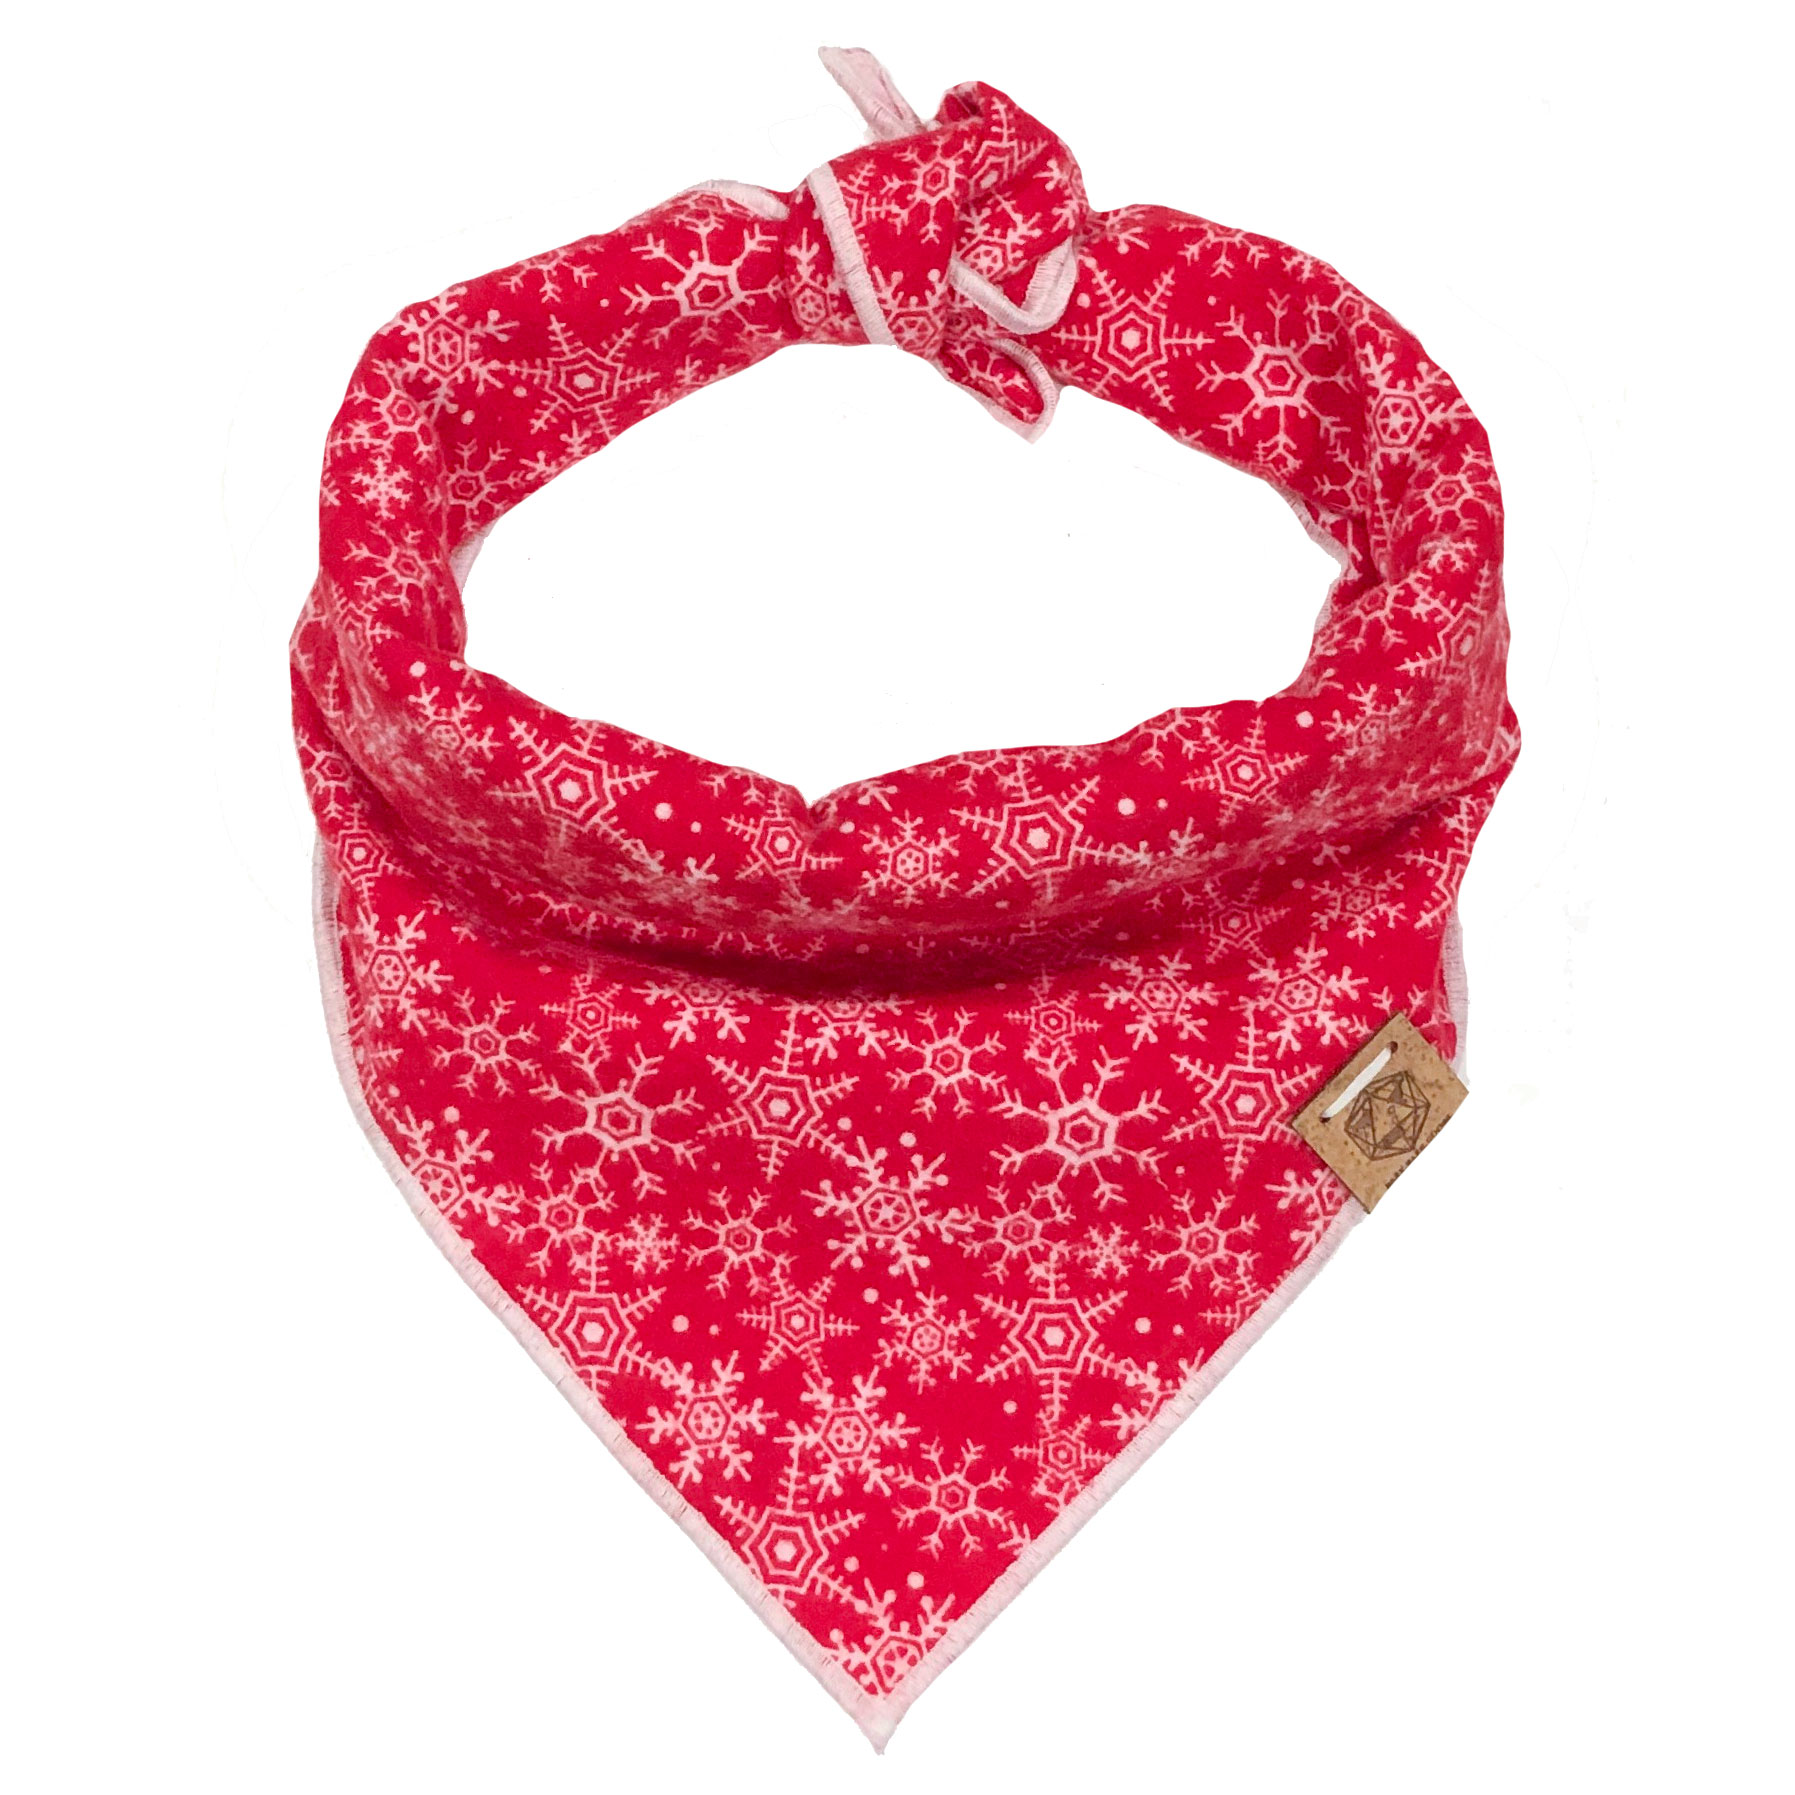 red-snowflake-dog-bandana-flannel.jpg